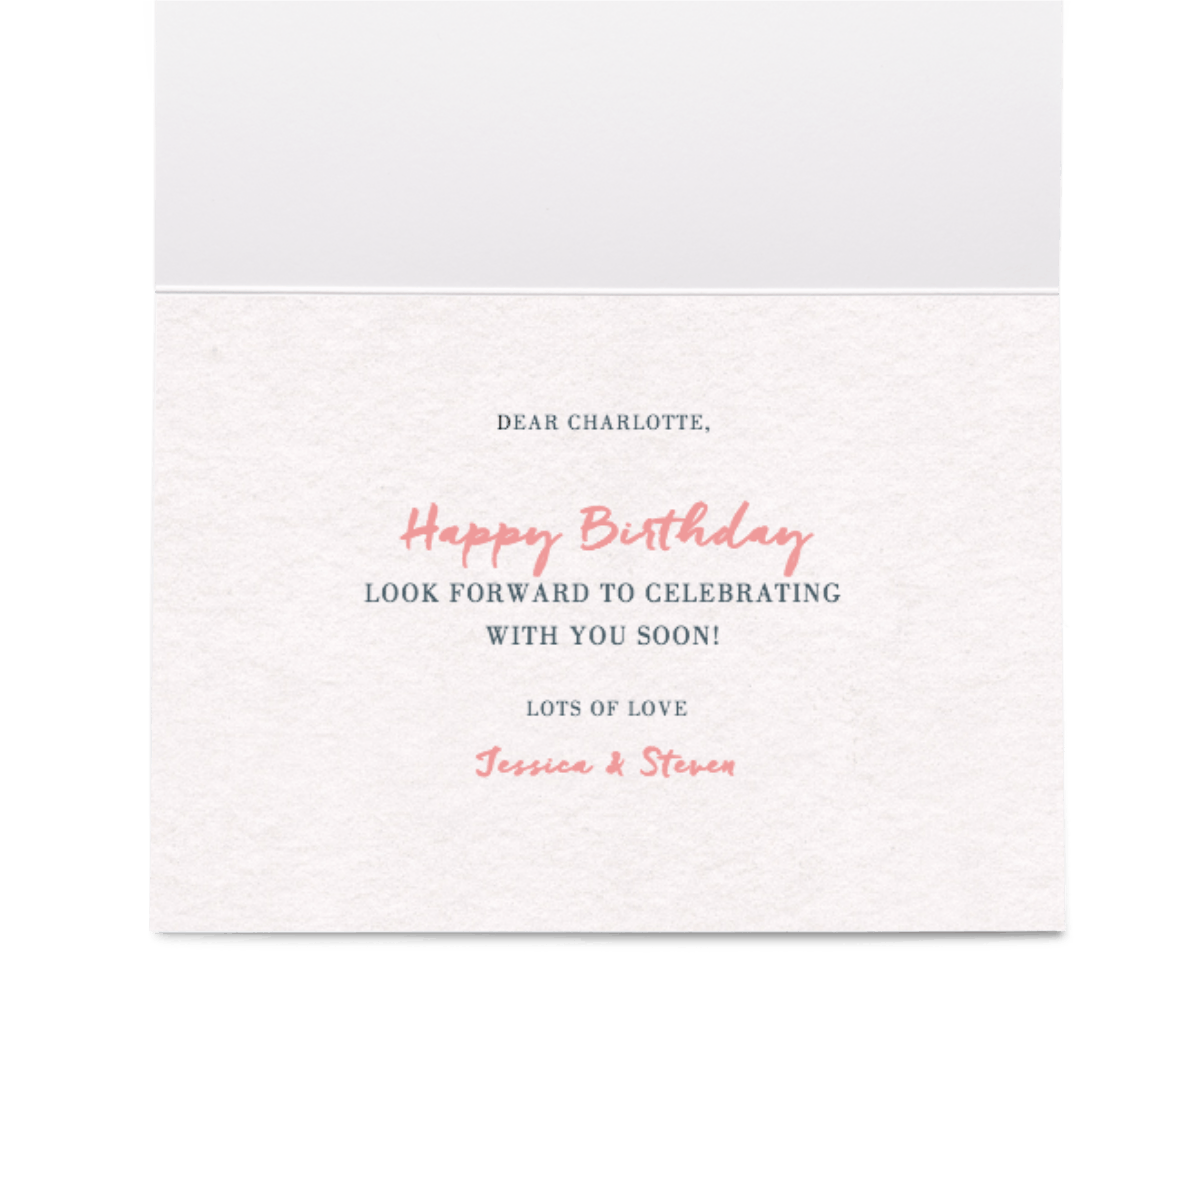 Https%3a%2f%2fwww.papier.com%2fproduct image%2f887%2f20%2fcitrus birthday 255 inside 1453909562.png?ixlib=rb 1.1